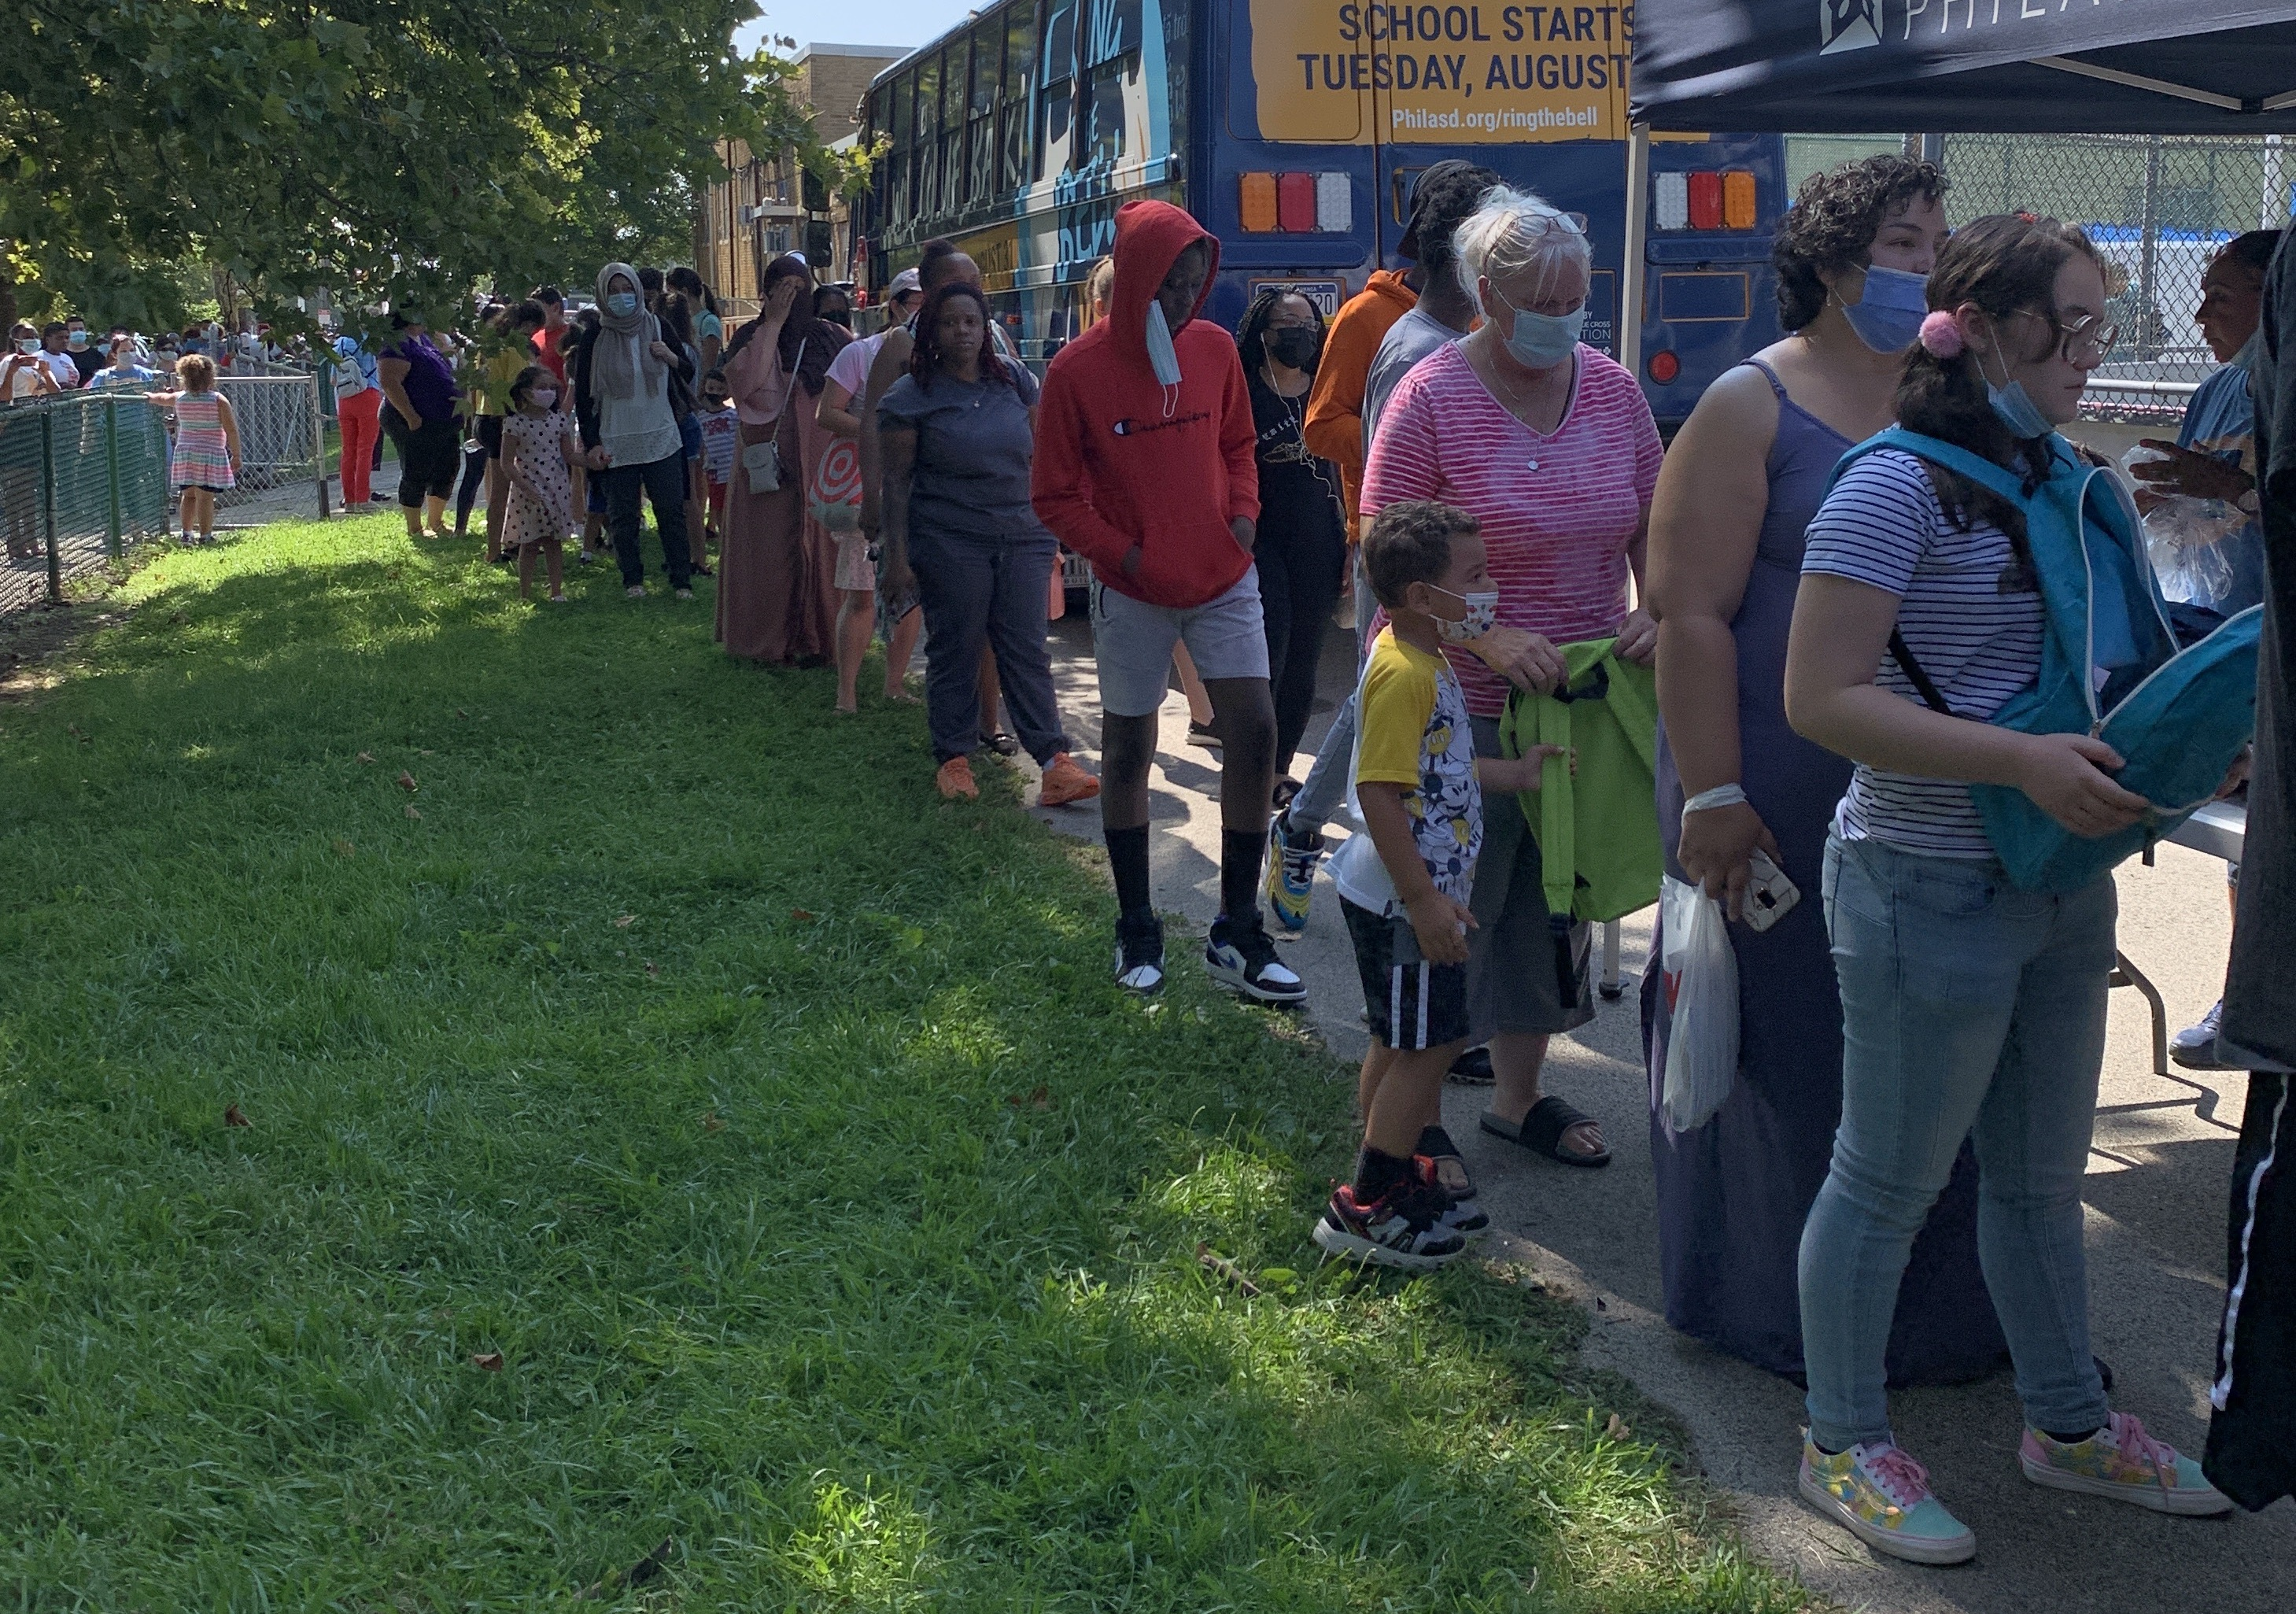 A long line of families wait near Cottman Avenue in the Northeast. They stand on a sidewalk next to a grassy area.